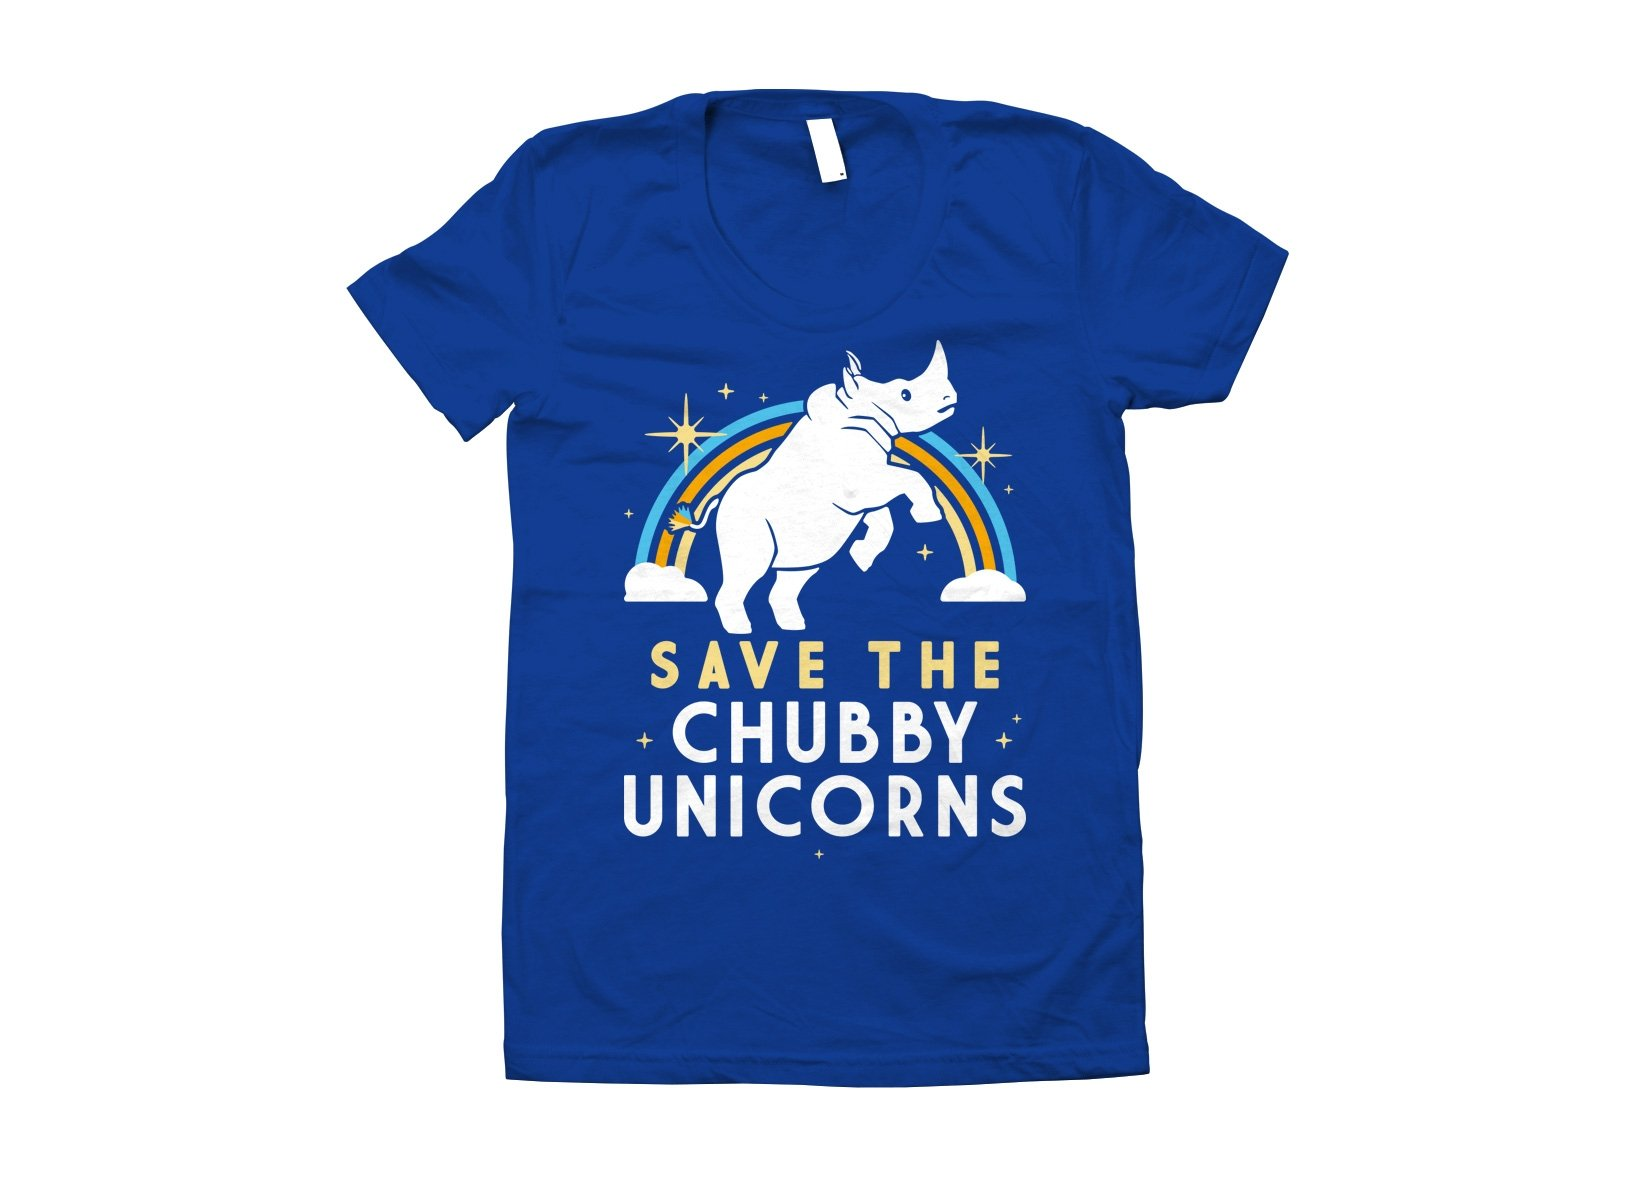 Save The Chubby Unicorns on Juniors T-Shirt